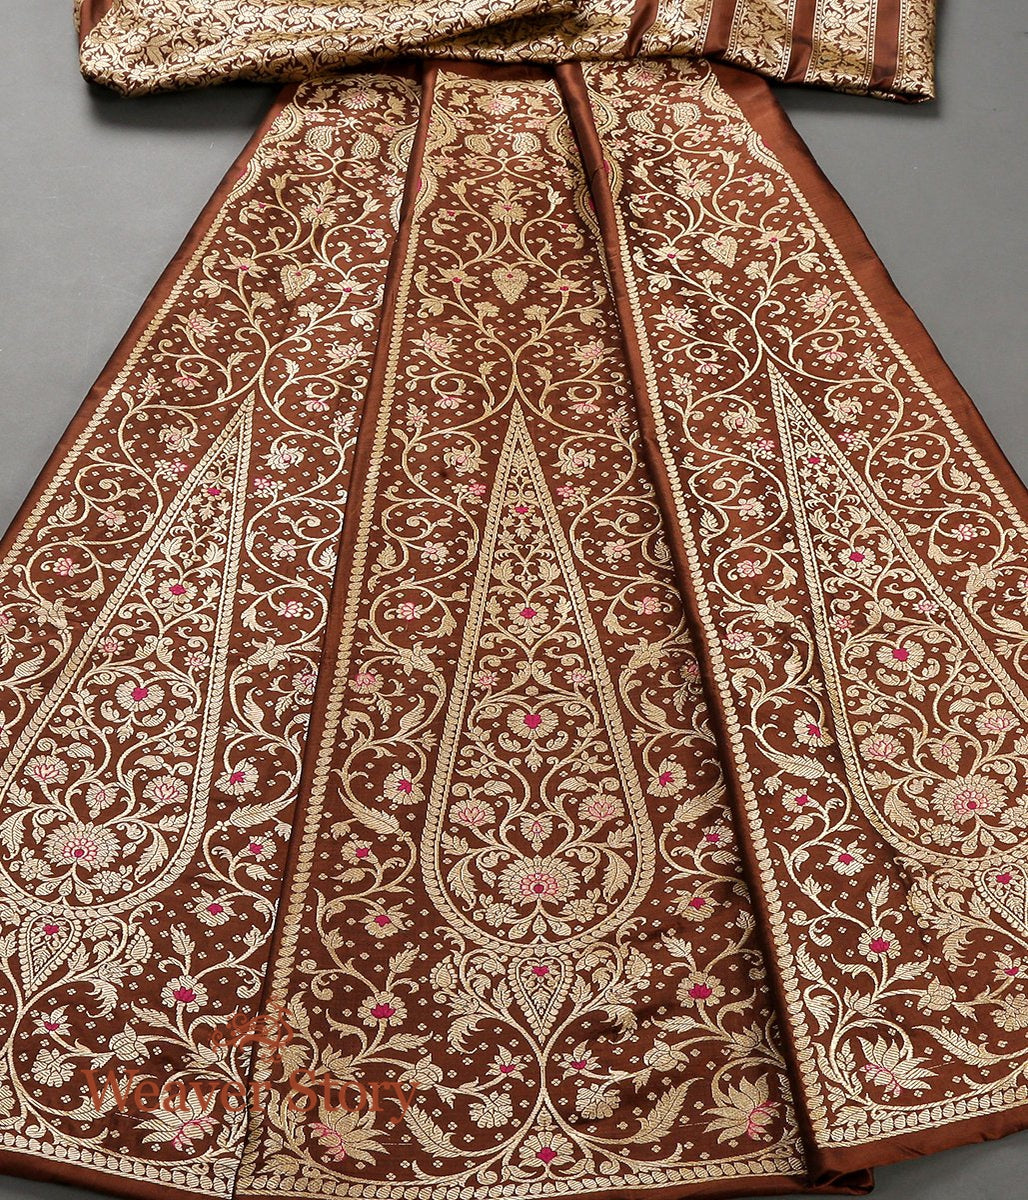 Handwoven Banarasi kalidar Lehenga in Chocolate Brown with Meenakari